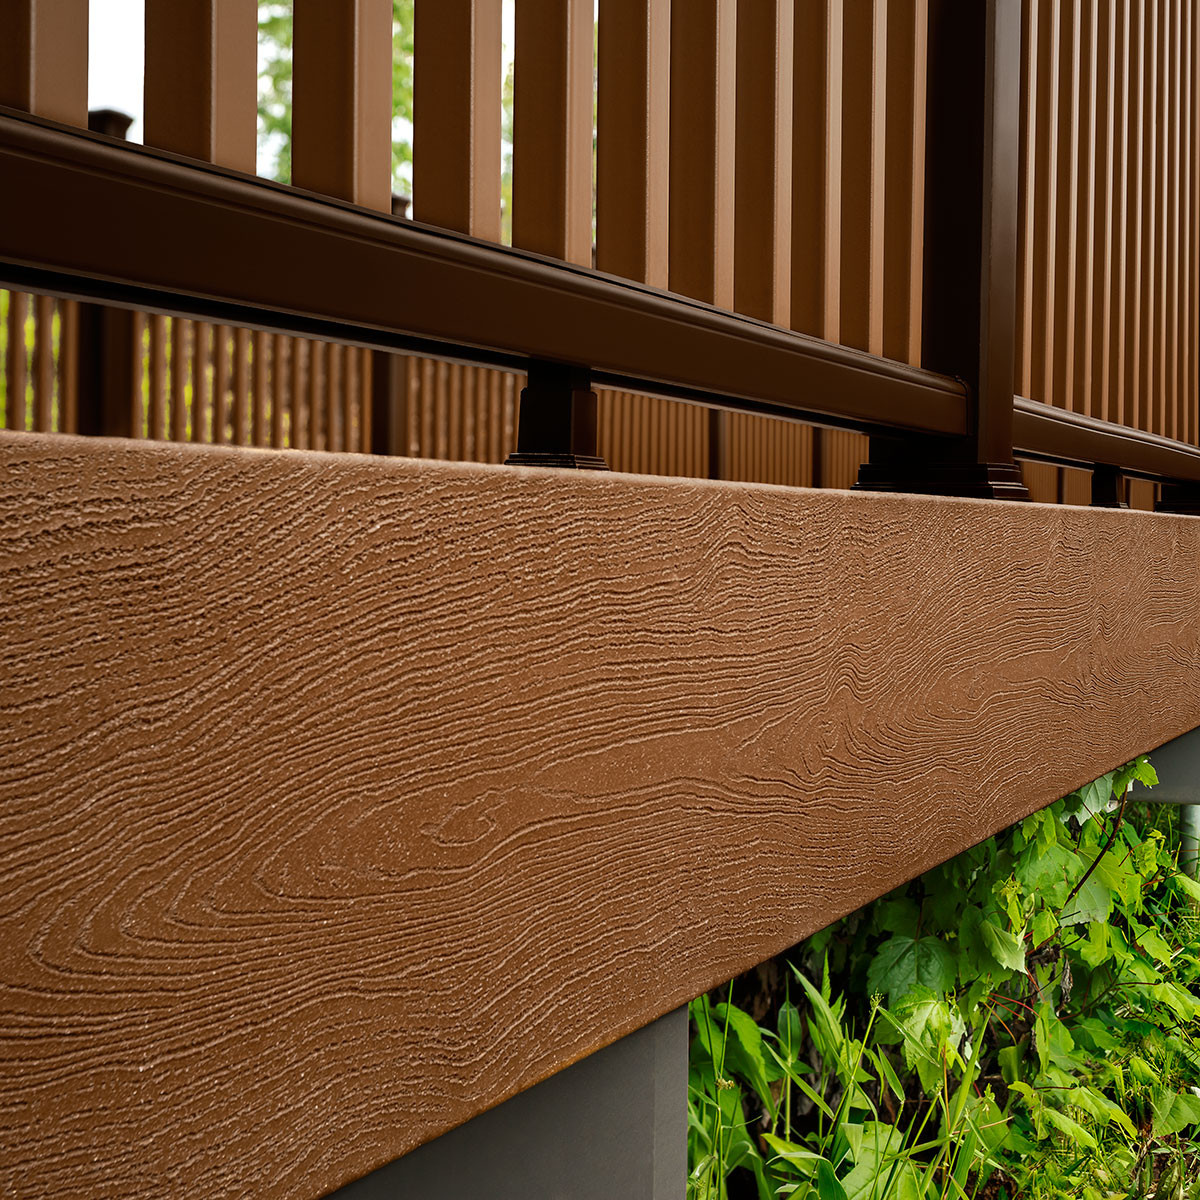 Discover the natural wood-grain texture of Trex Transcend Fascia in Tree House.